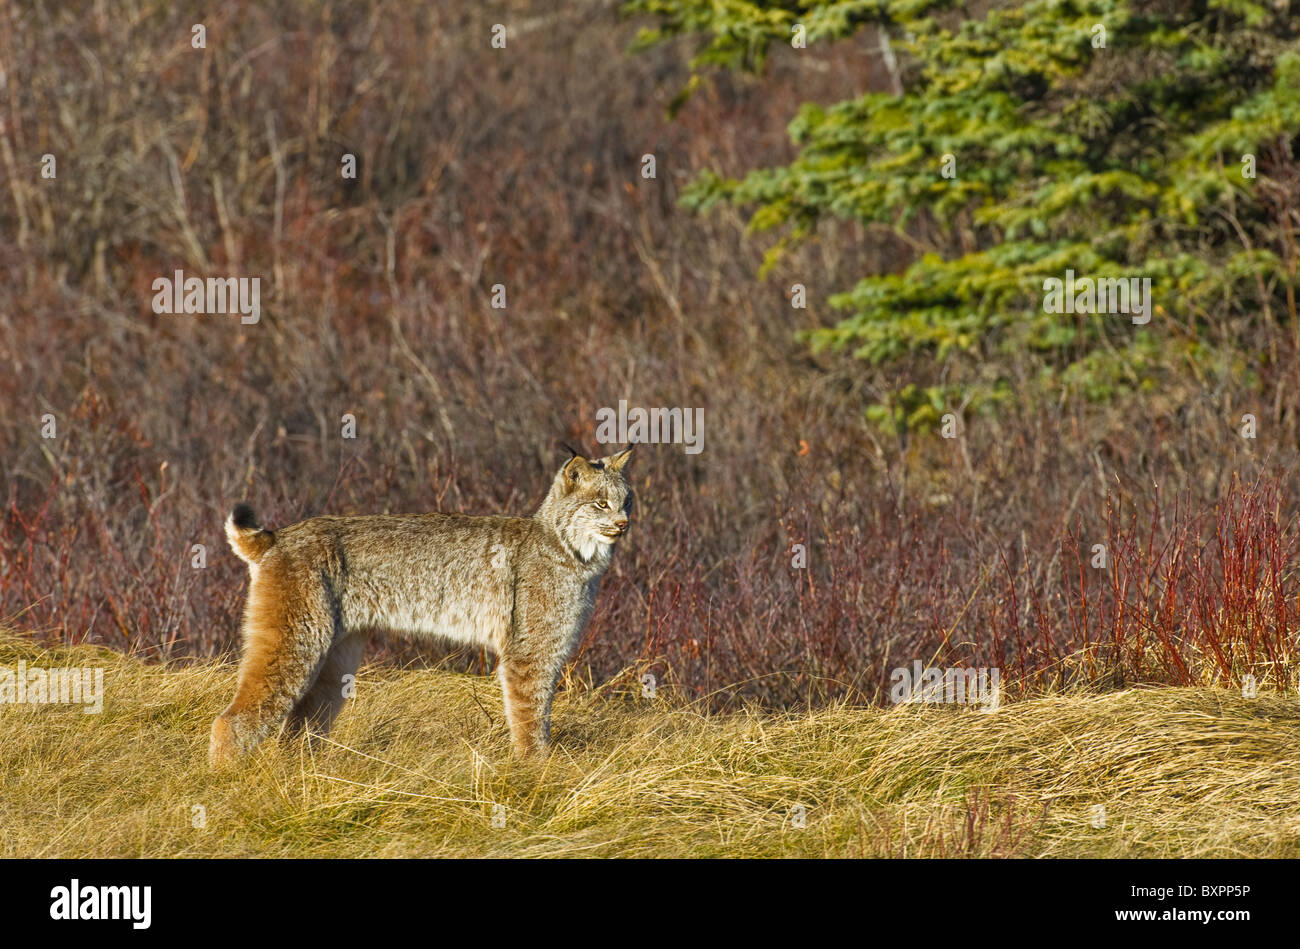 A side view image of a wild Canadian Lynx - Stock Image